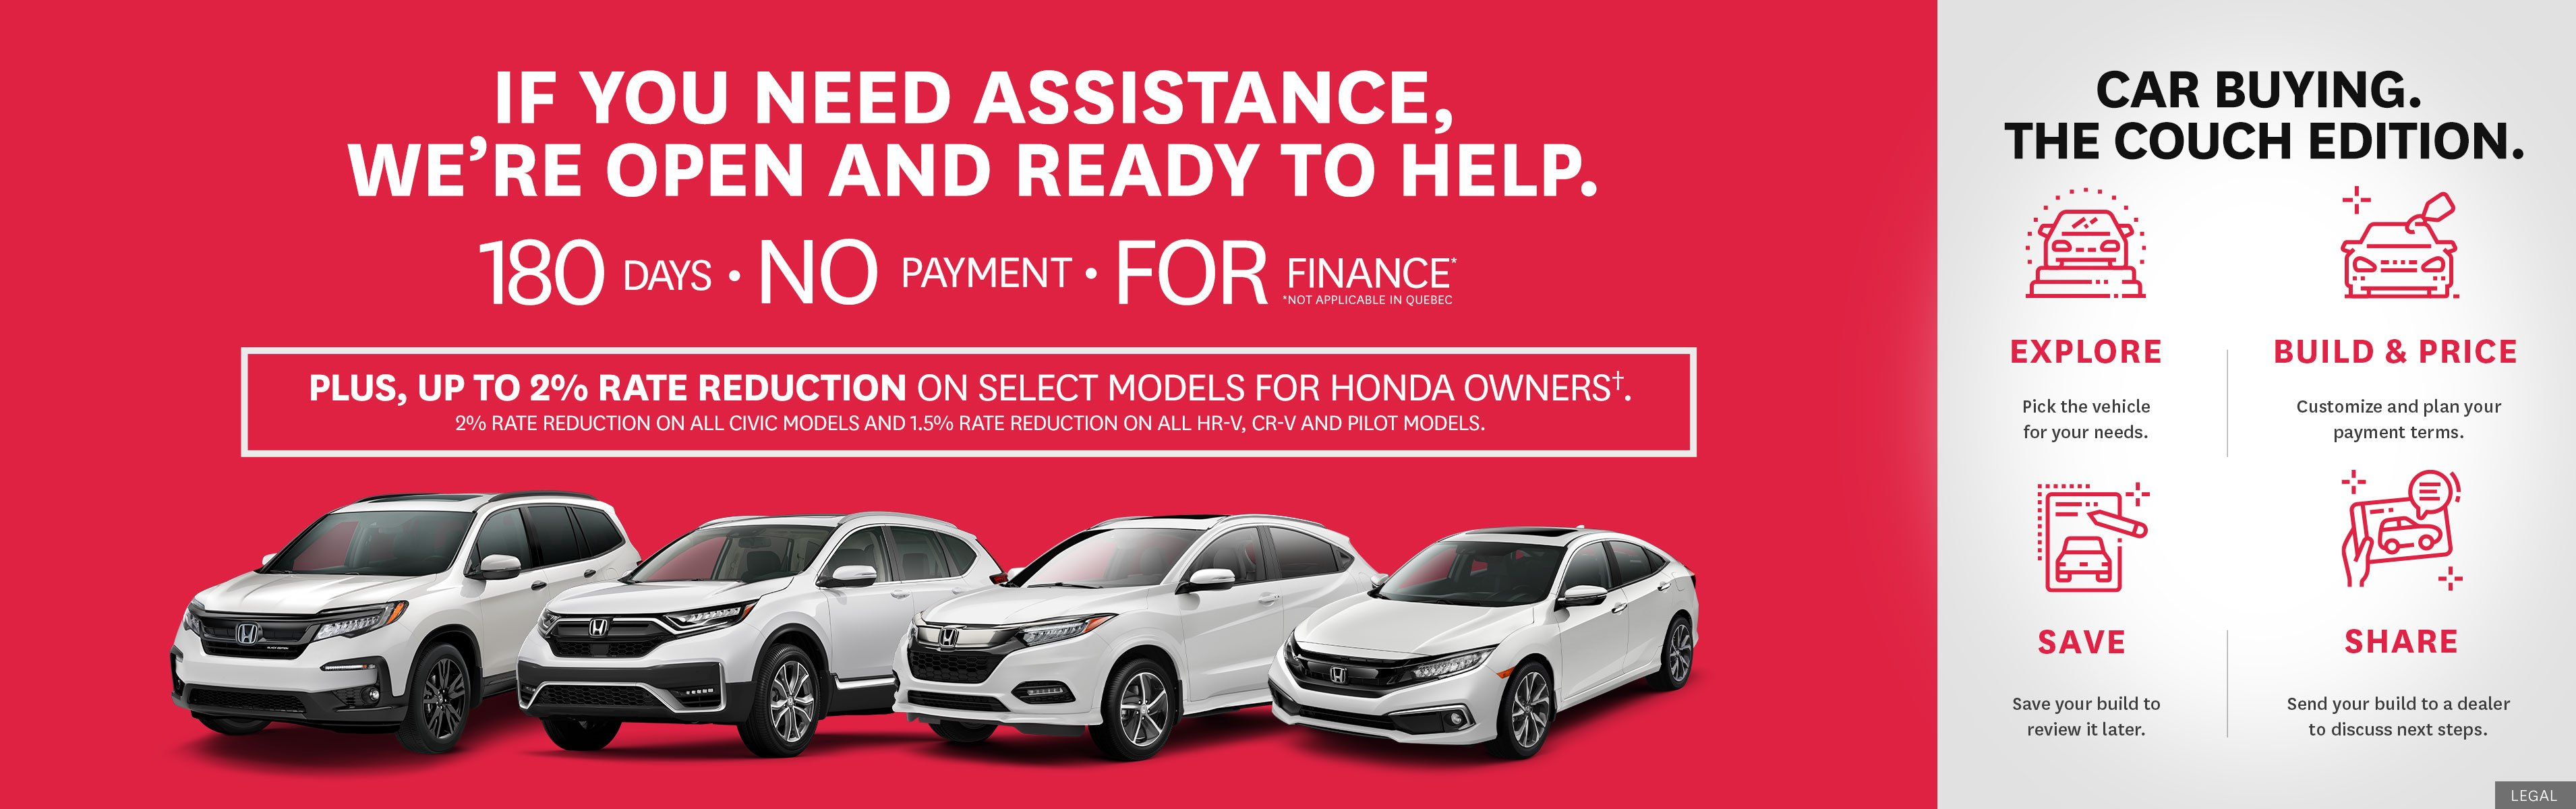 If you need assistance, we're open and ready to help. 180 days no payment for finance. Honda owners are eligible for up to a 2% rate reduction on select models. Explore, Build and Price, Save, Share